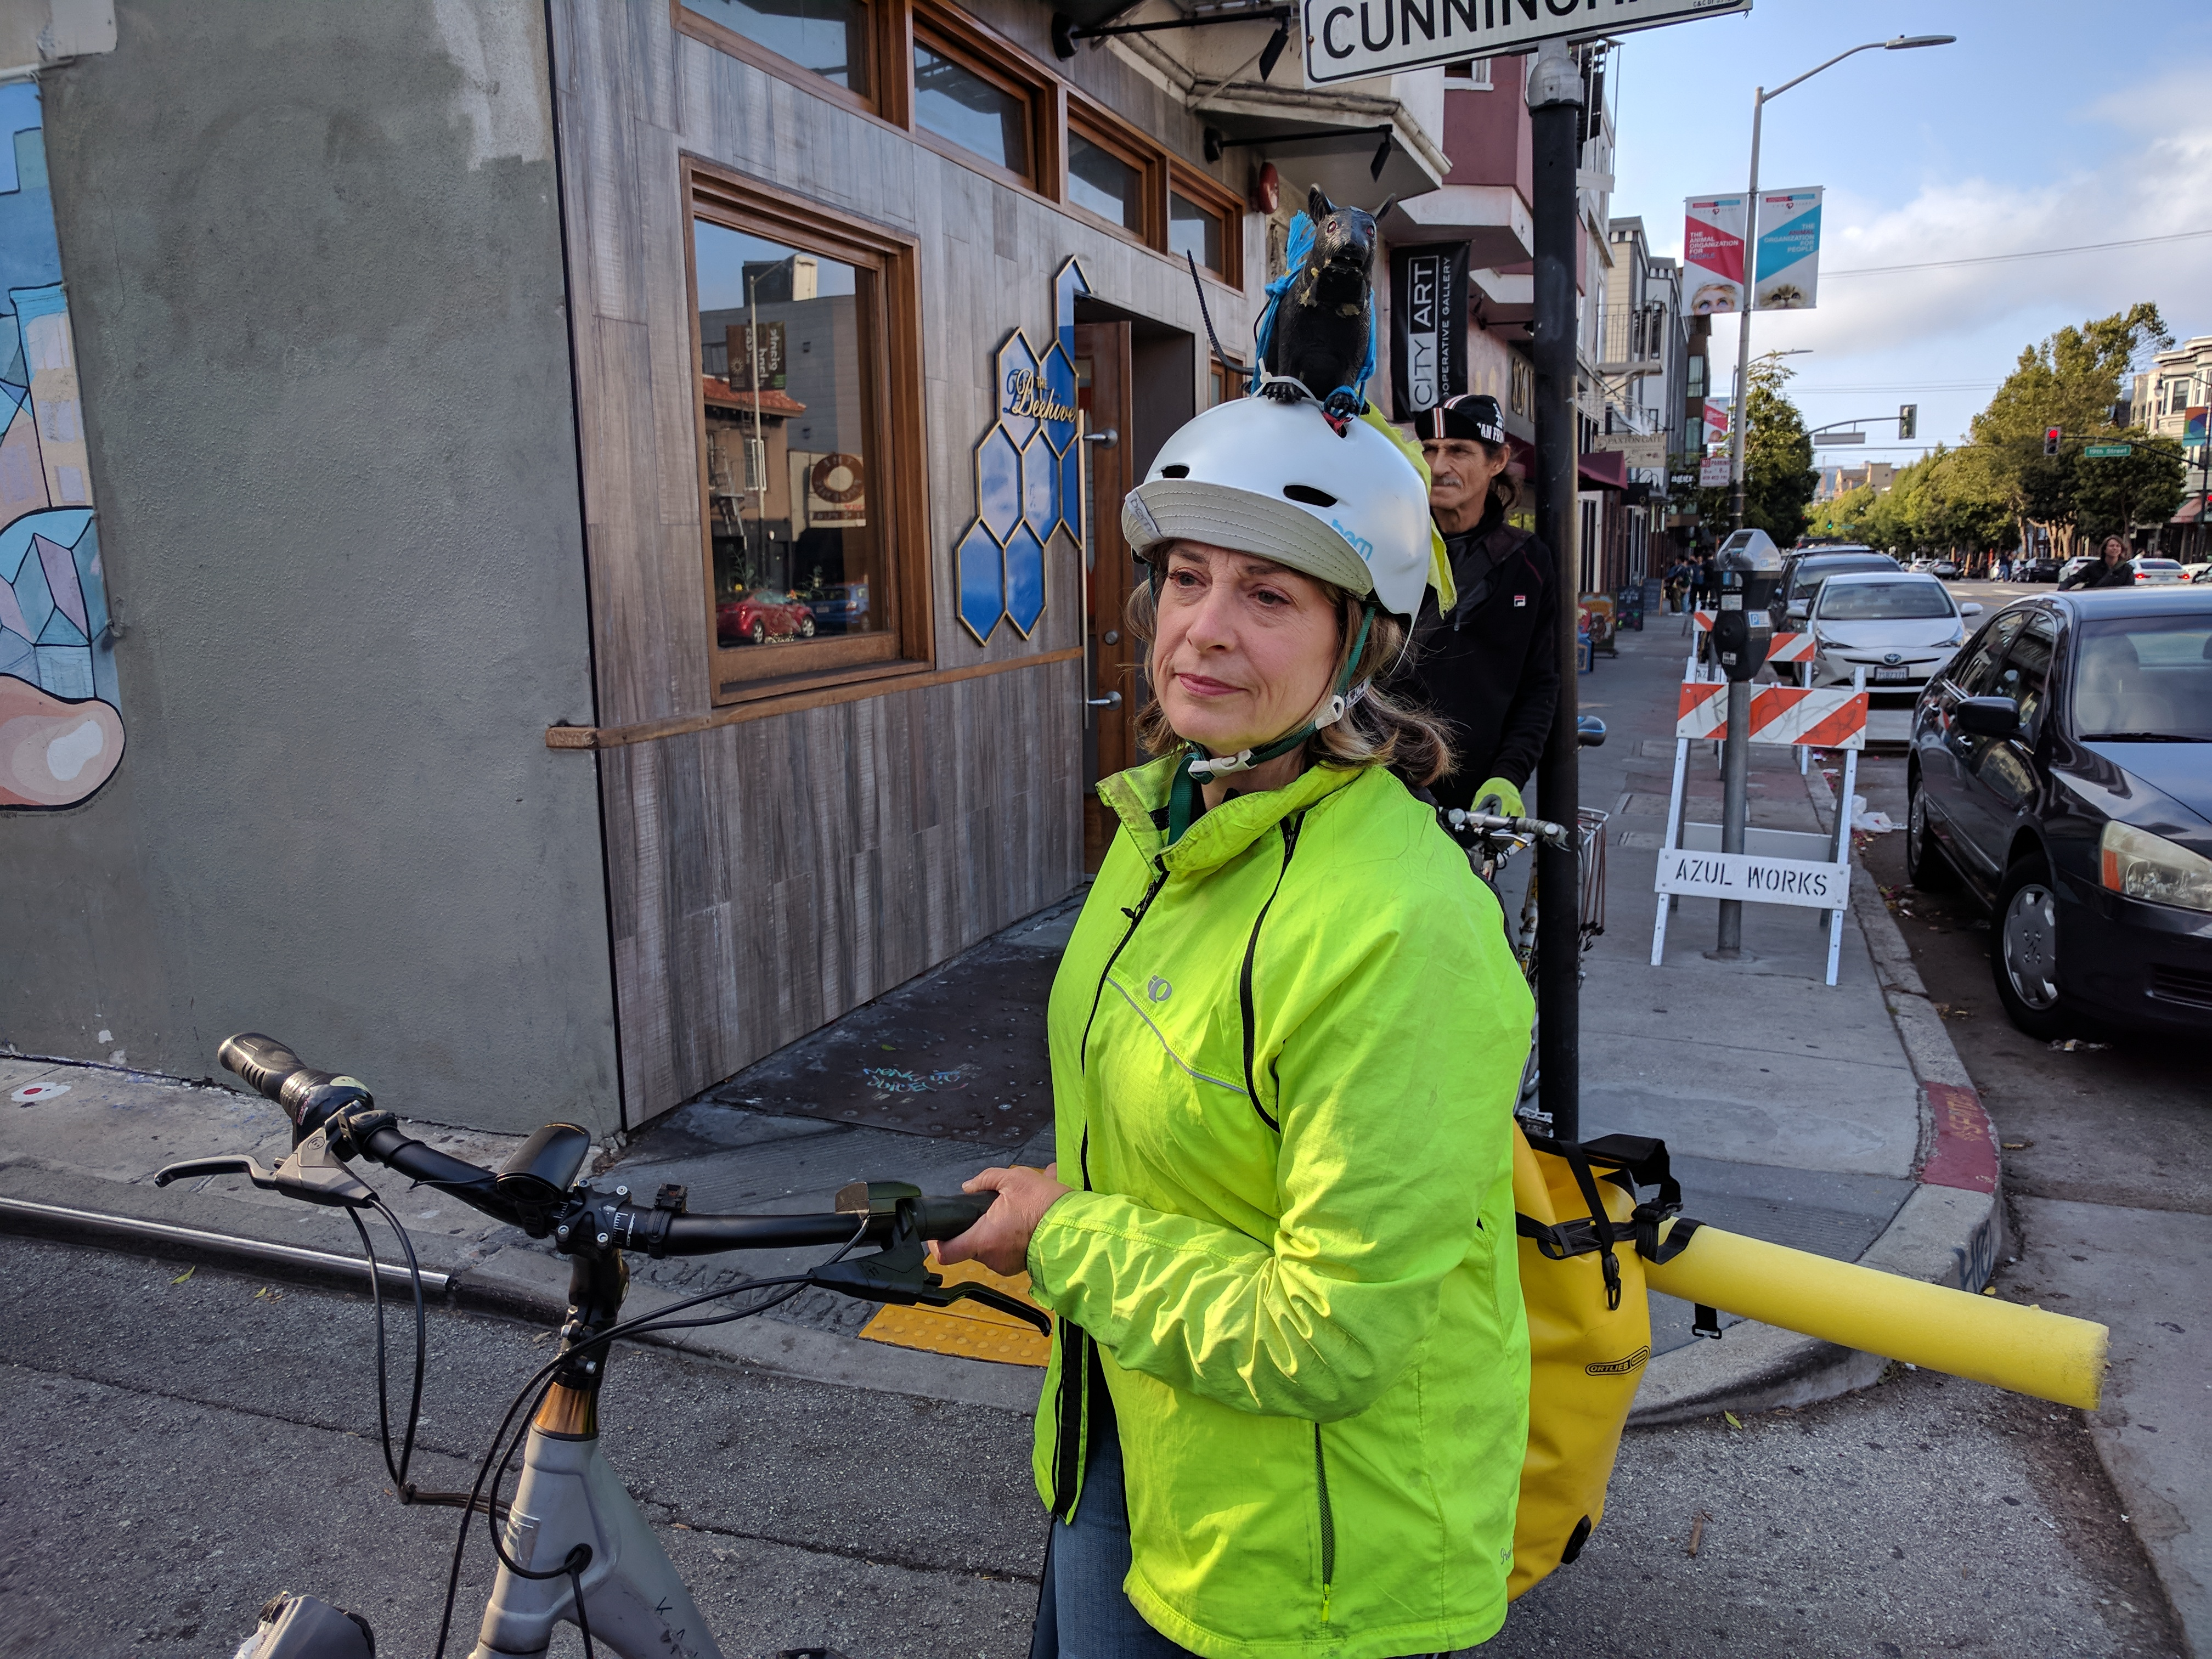 Rat-rider Maureen Persico, one of the original organizers of the people protected bike lane protests on Valencia